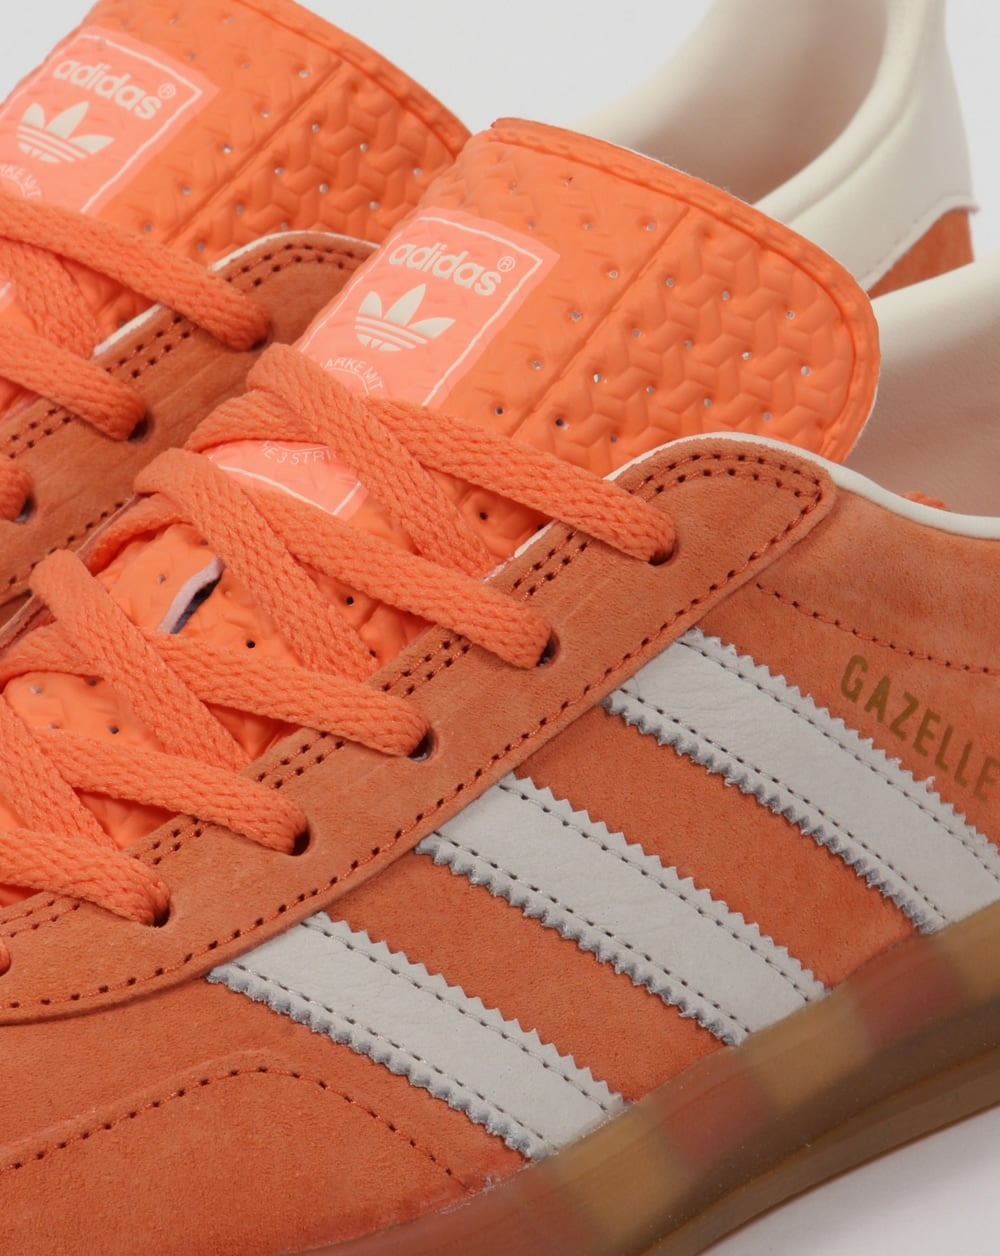 b8e04aeb890 Adidas Gazelle Indoor Trainers St Tropic Melon